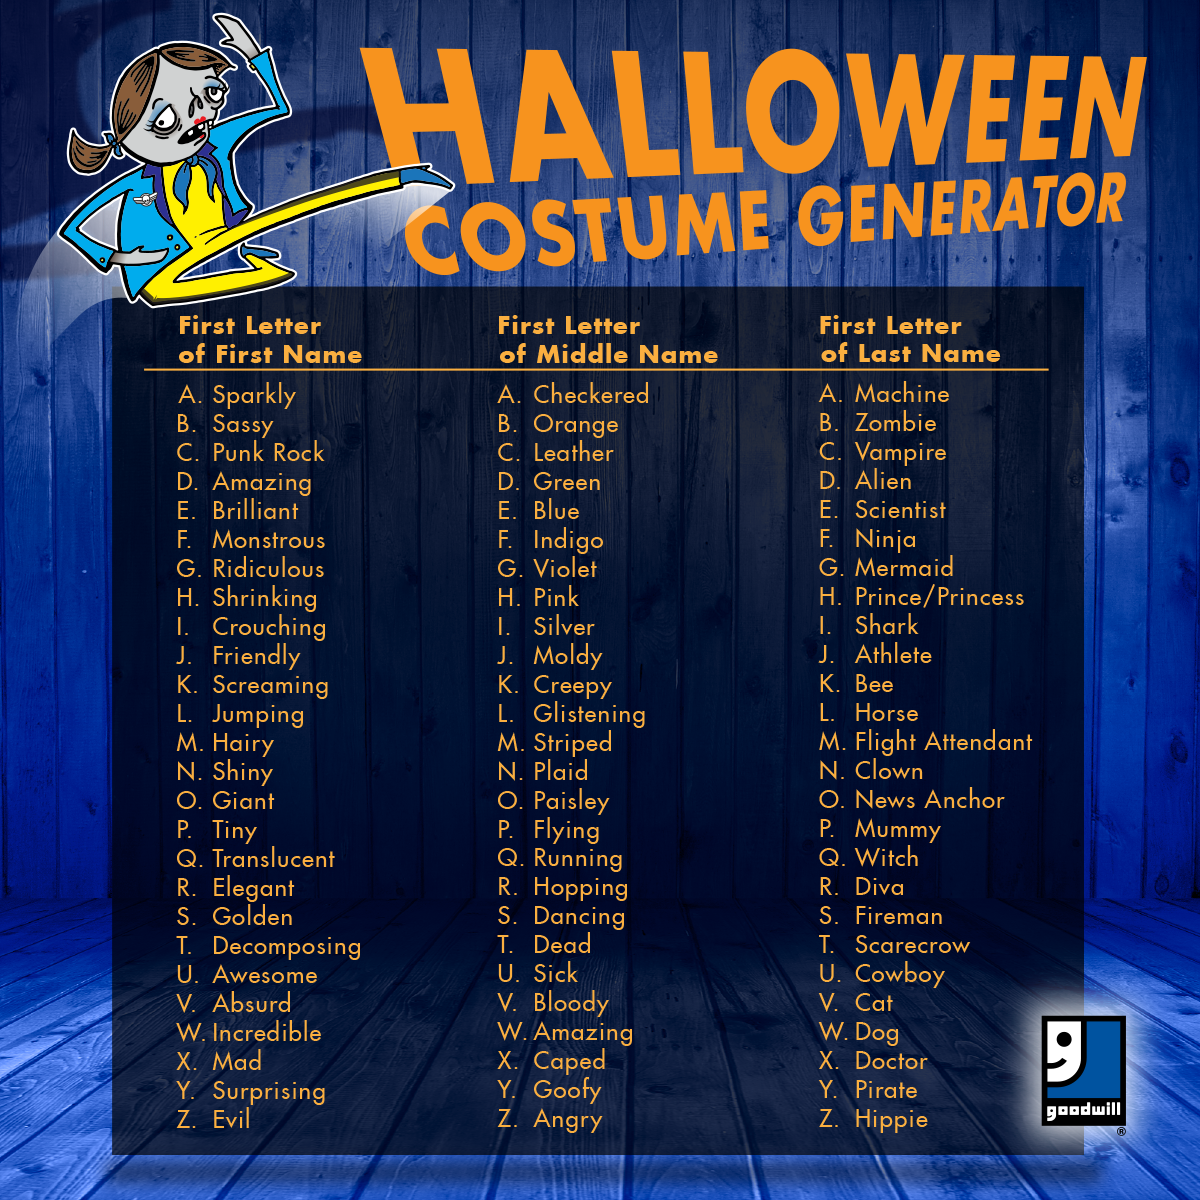 Get Ready For Halloween Our Costume Generator Will Help You Get A Unique Diy Idea Together In No Time Funny Name Generator Halloween Names Name Generator